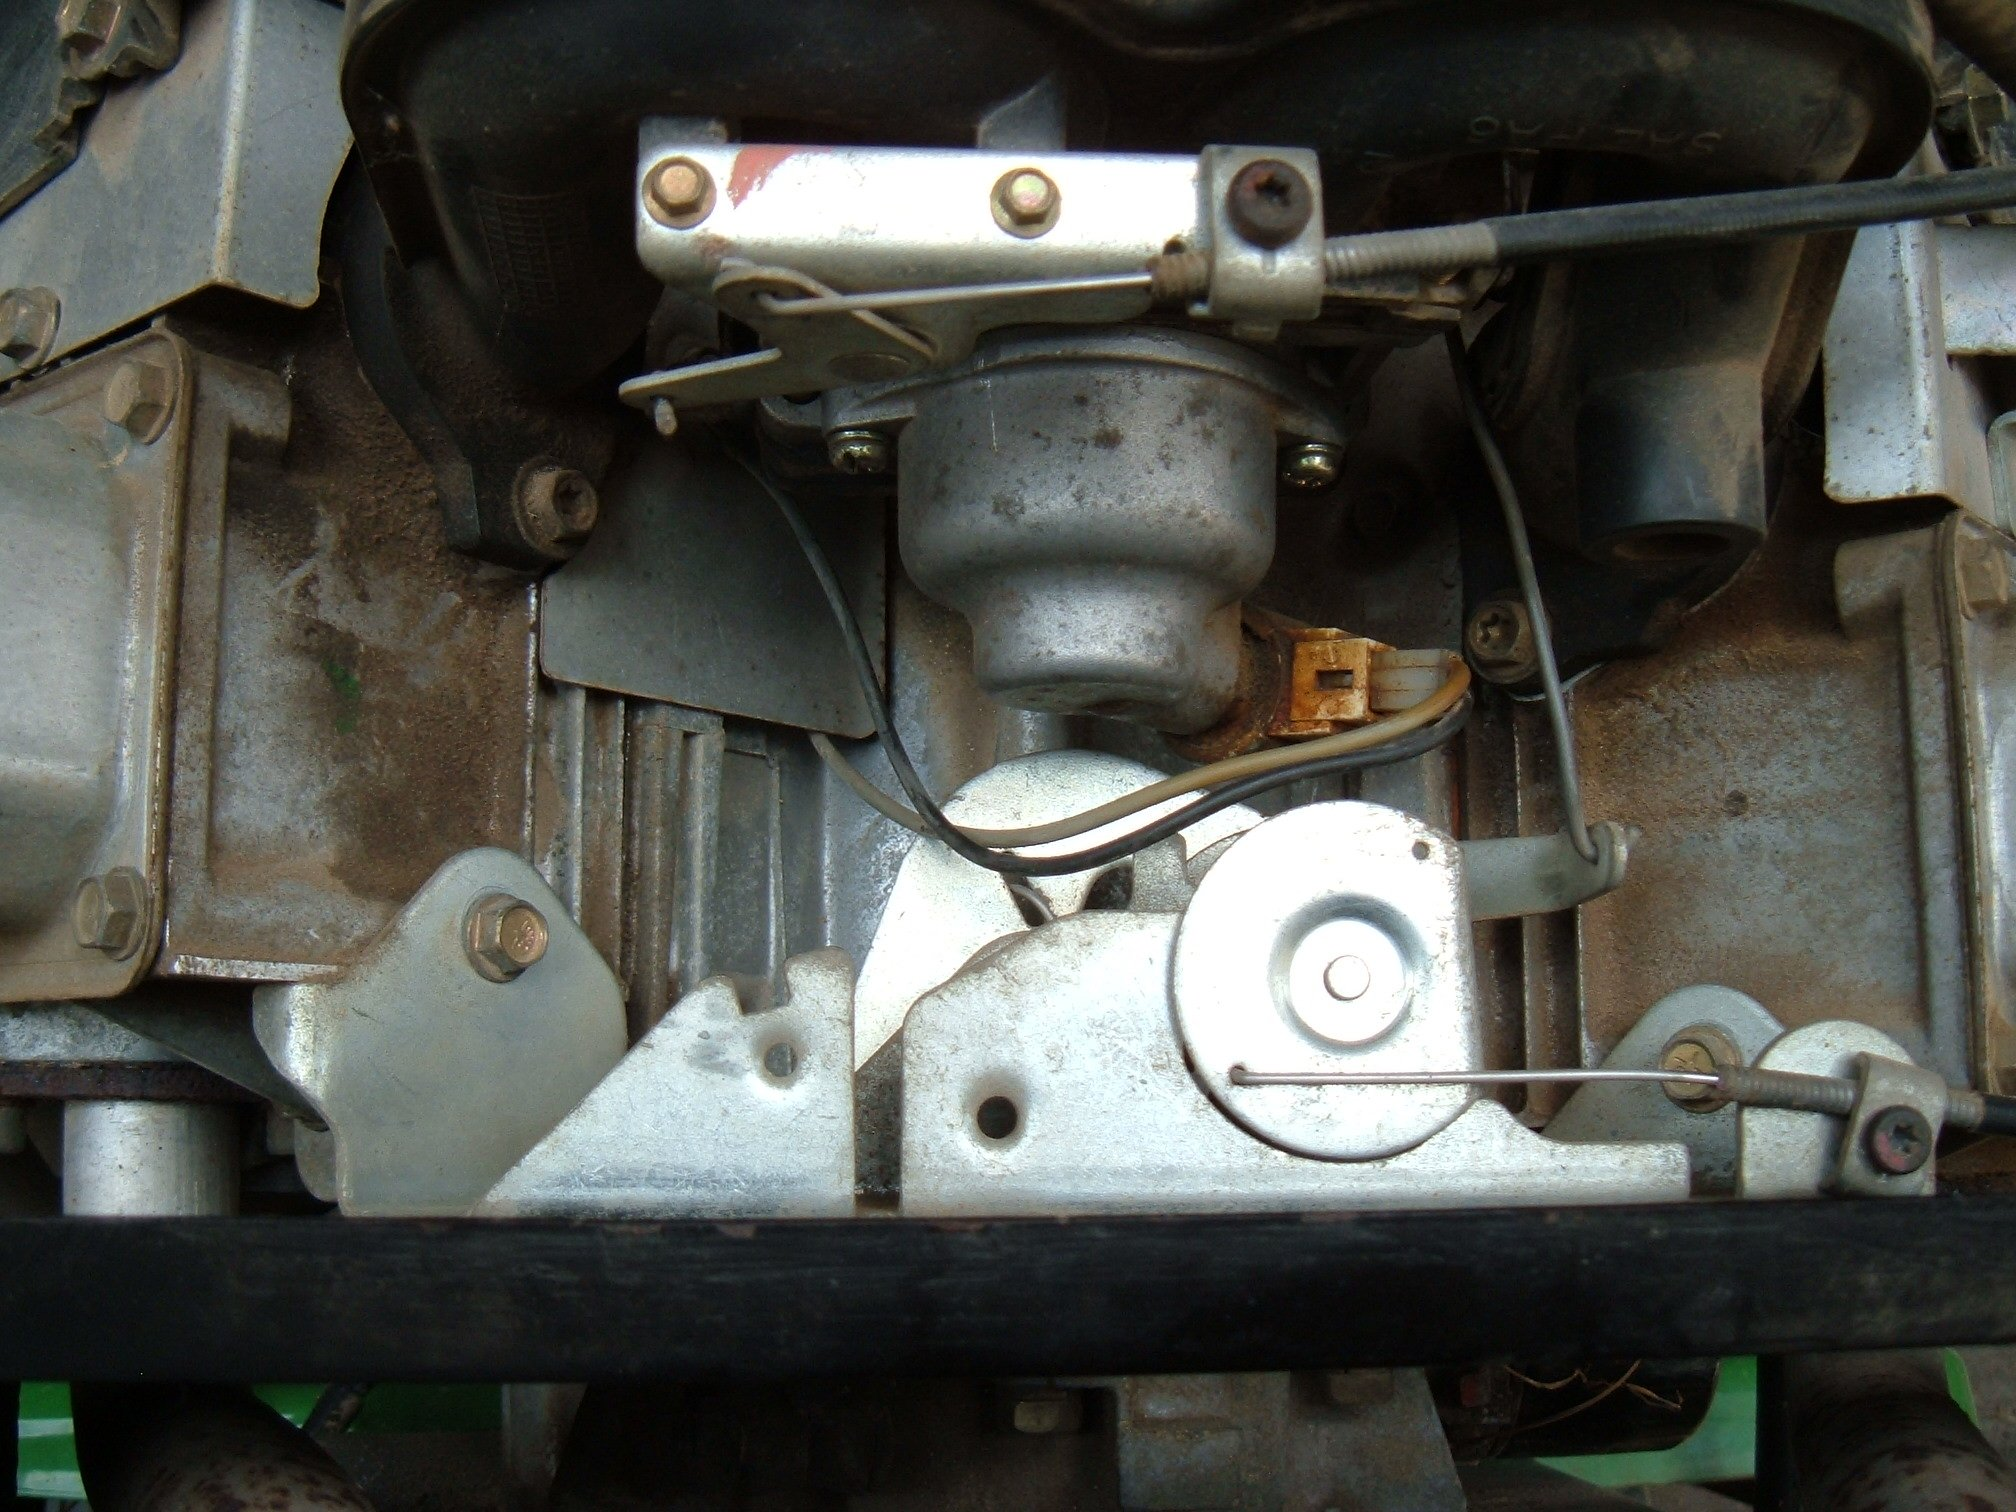 i am having a problem getting my deere l120 to start and